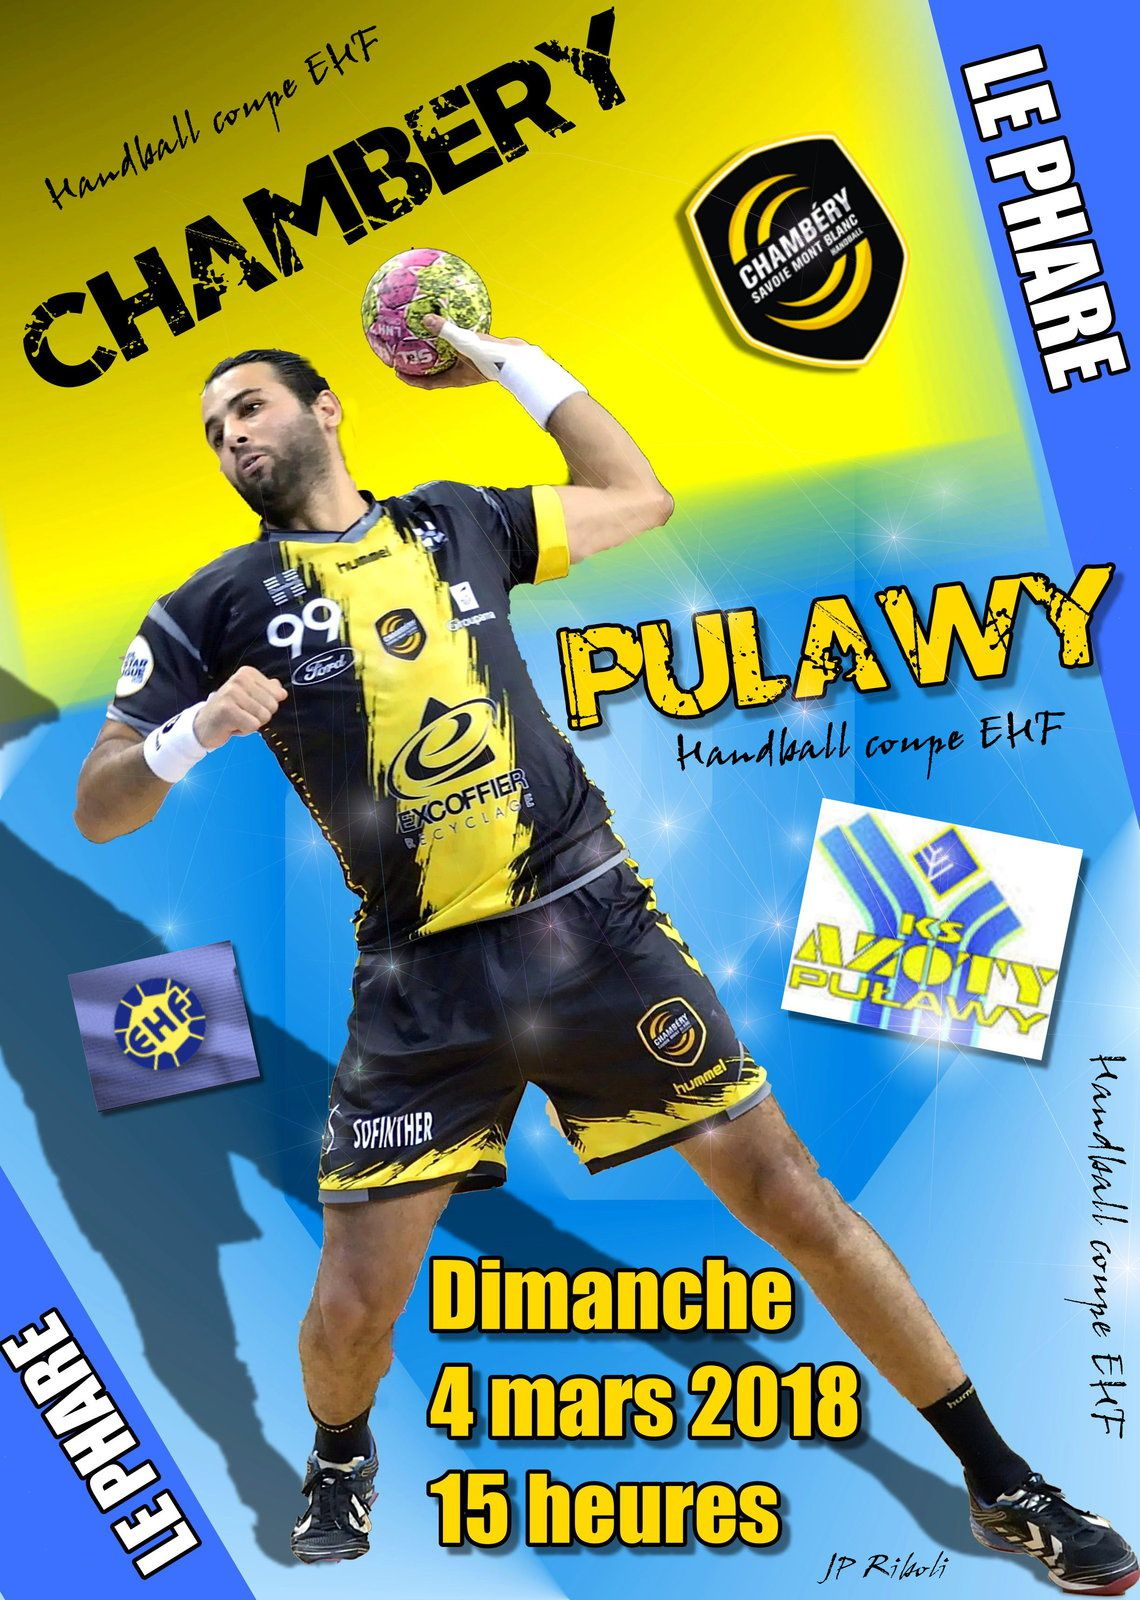 CHAMBÉRY / PULAWY DIMANCHE 04 MARS - 15 Heures